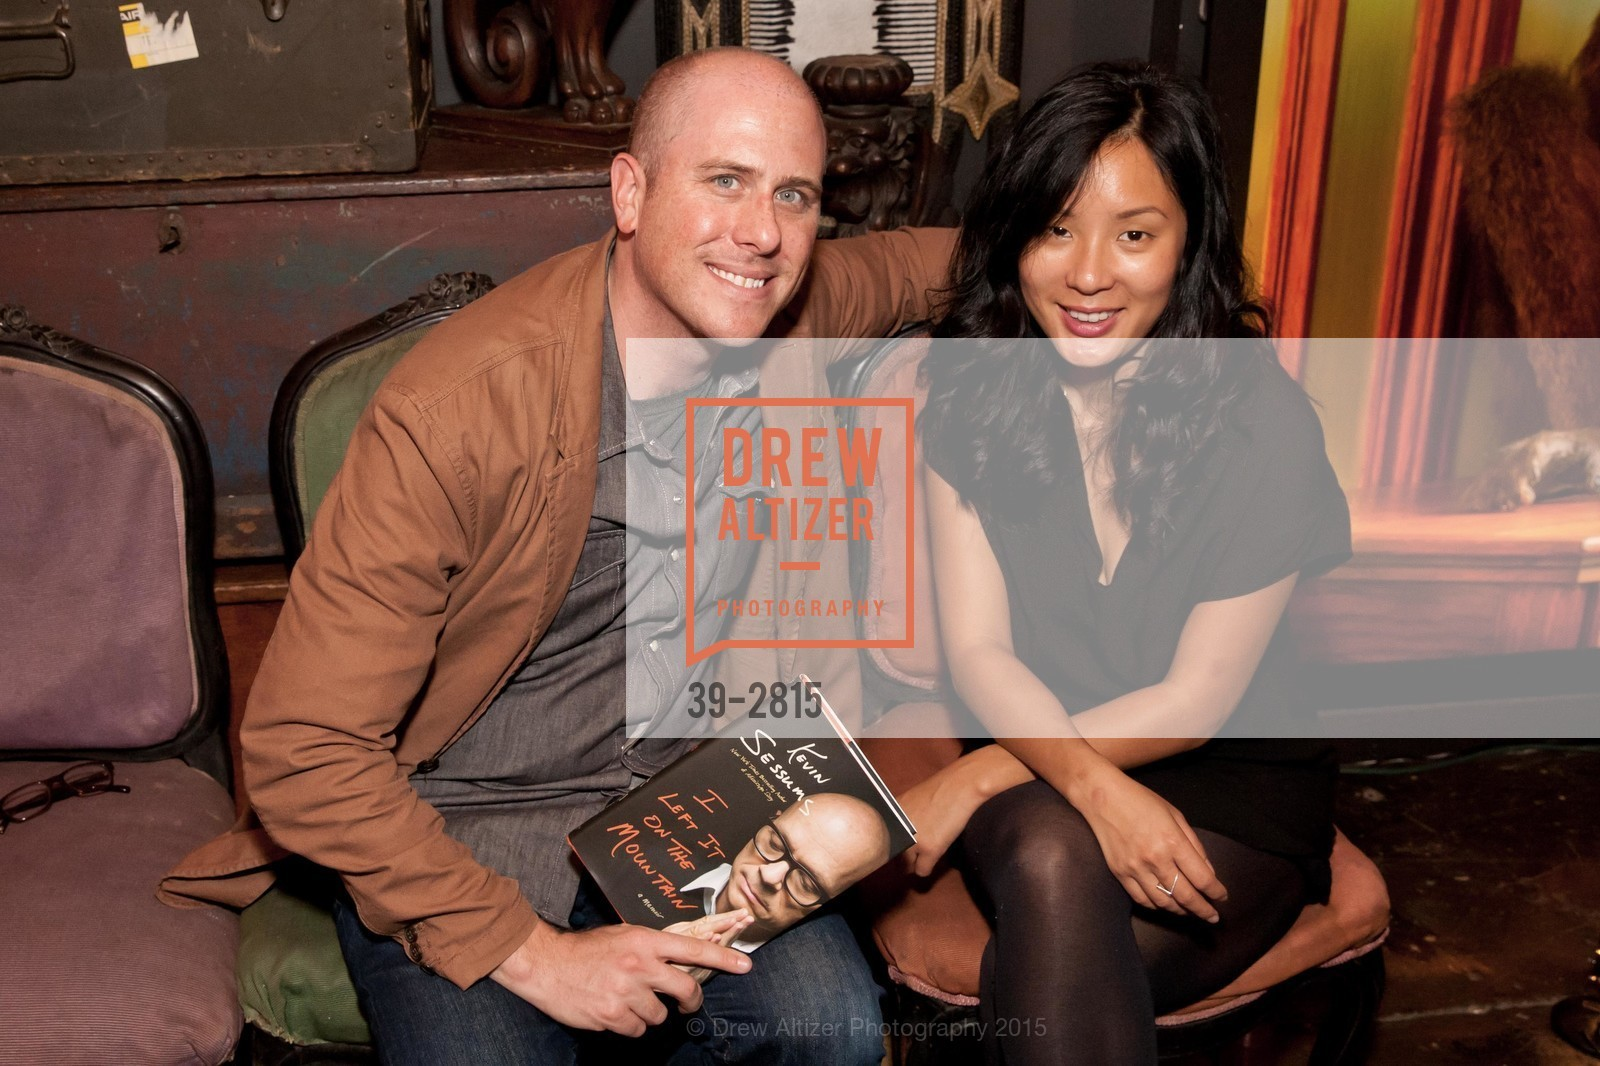 Matt Haber, Valerie Luu, Photo #39-2815